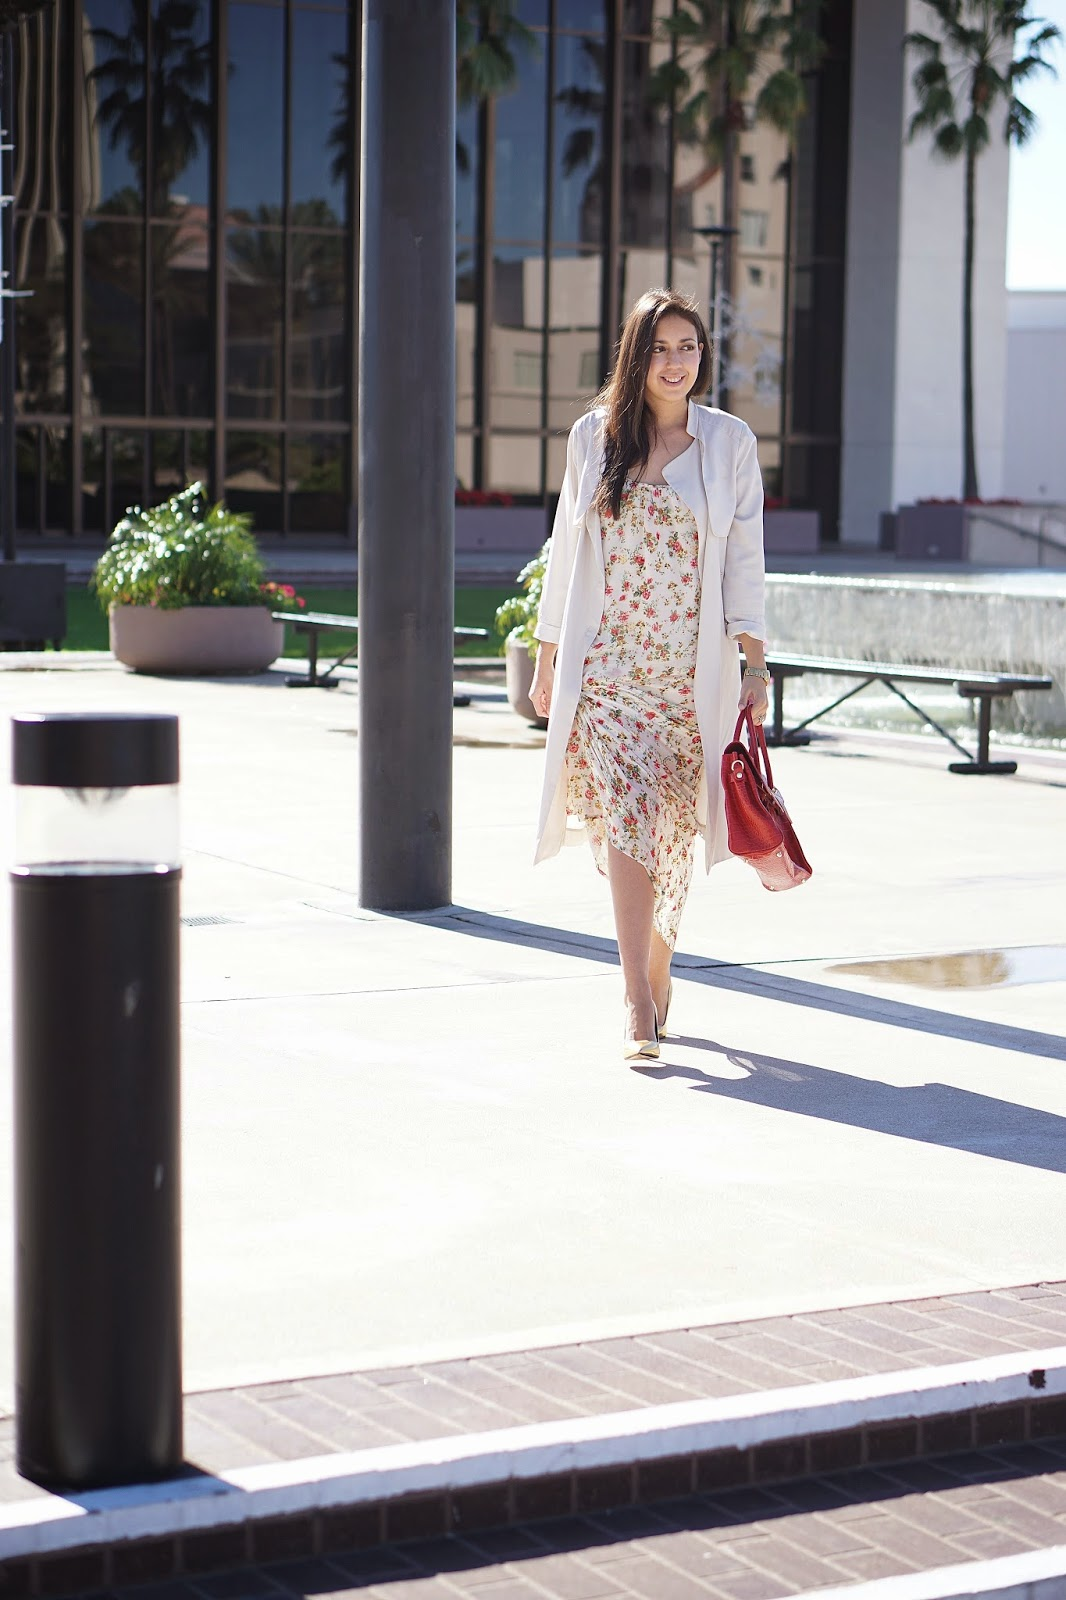 H&M trench coat, Trench Coat, Flowy Trench Coat, Beige Trench Coat, Floral Maxi Dress, MNG by Mango Maxi Dress, JCPenney Maxi Dress, Vanilla Paris Bag, Gold Heels, Zara Gold Heels, Zara Gold Pumps, Red Hermes Bag, Bertie Bag